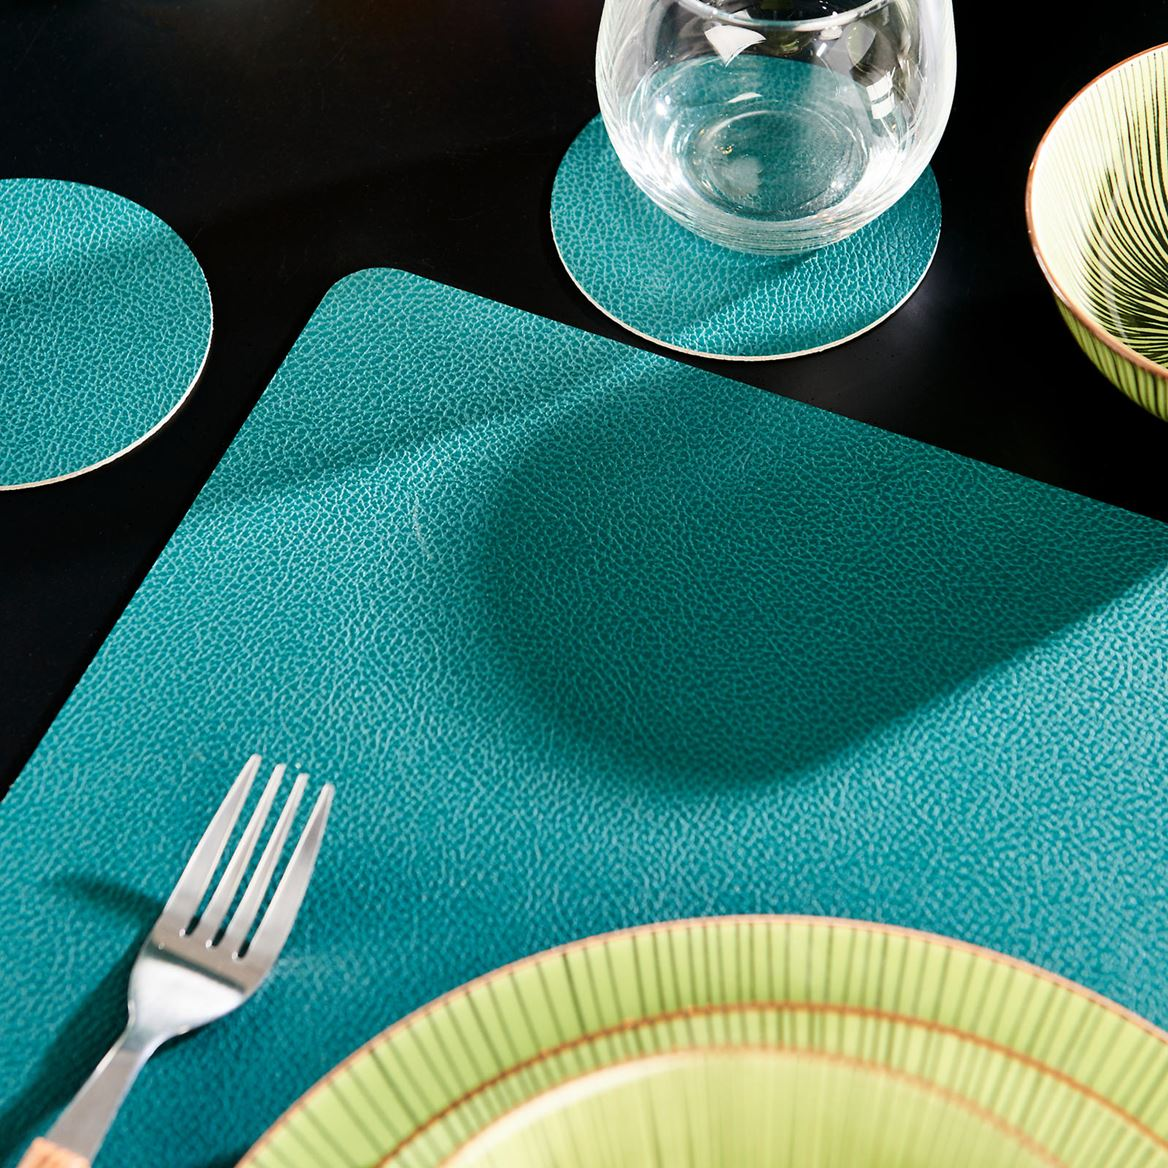 NAPPA Set de table gris, vert Larg. 33 x Long. 46 cm_nappa-set-de-table-gris,-vert-larg--33-x-long--46-cm